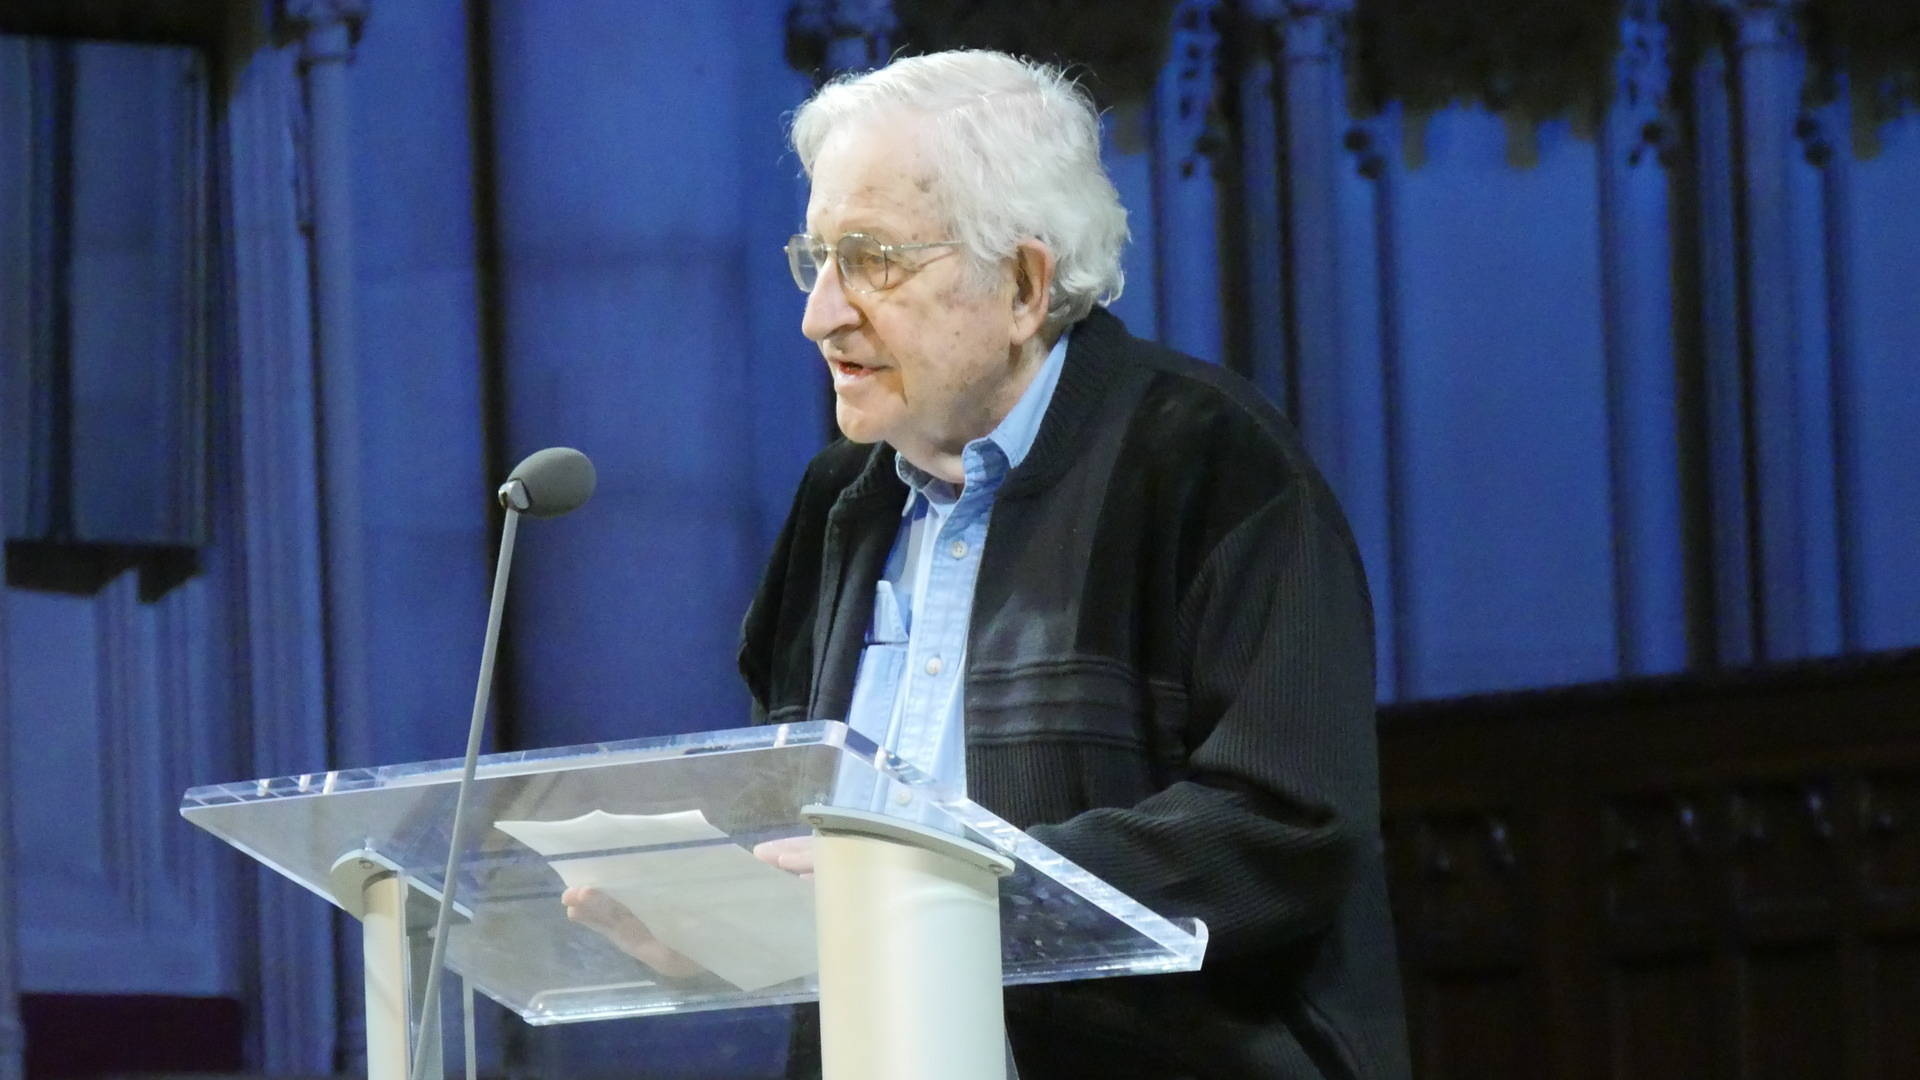 from climate change to nuclear war noam chomsky warns of literal noam chomsky trump election we are now facing threats to the survival of the human species